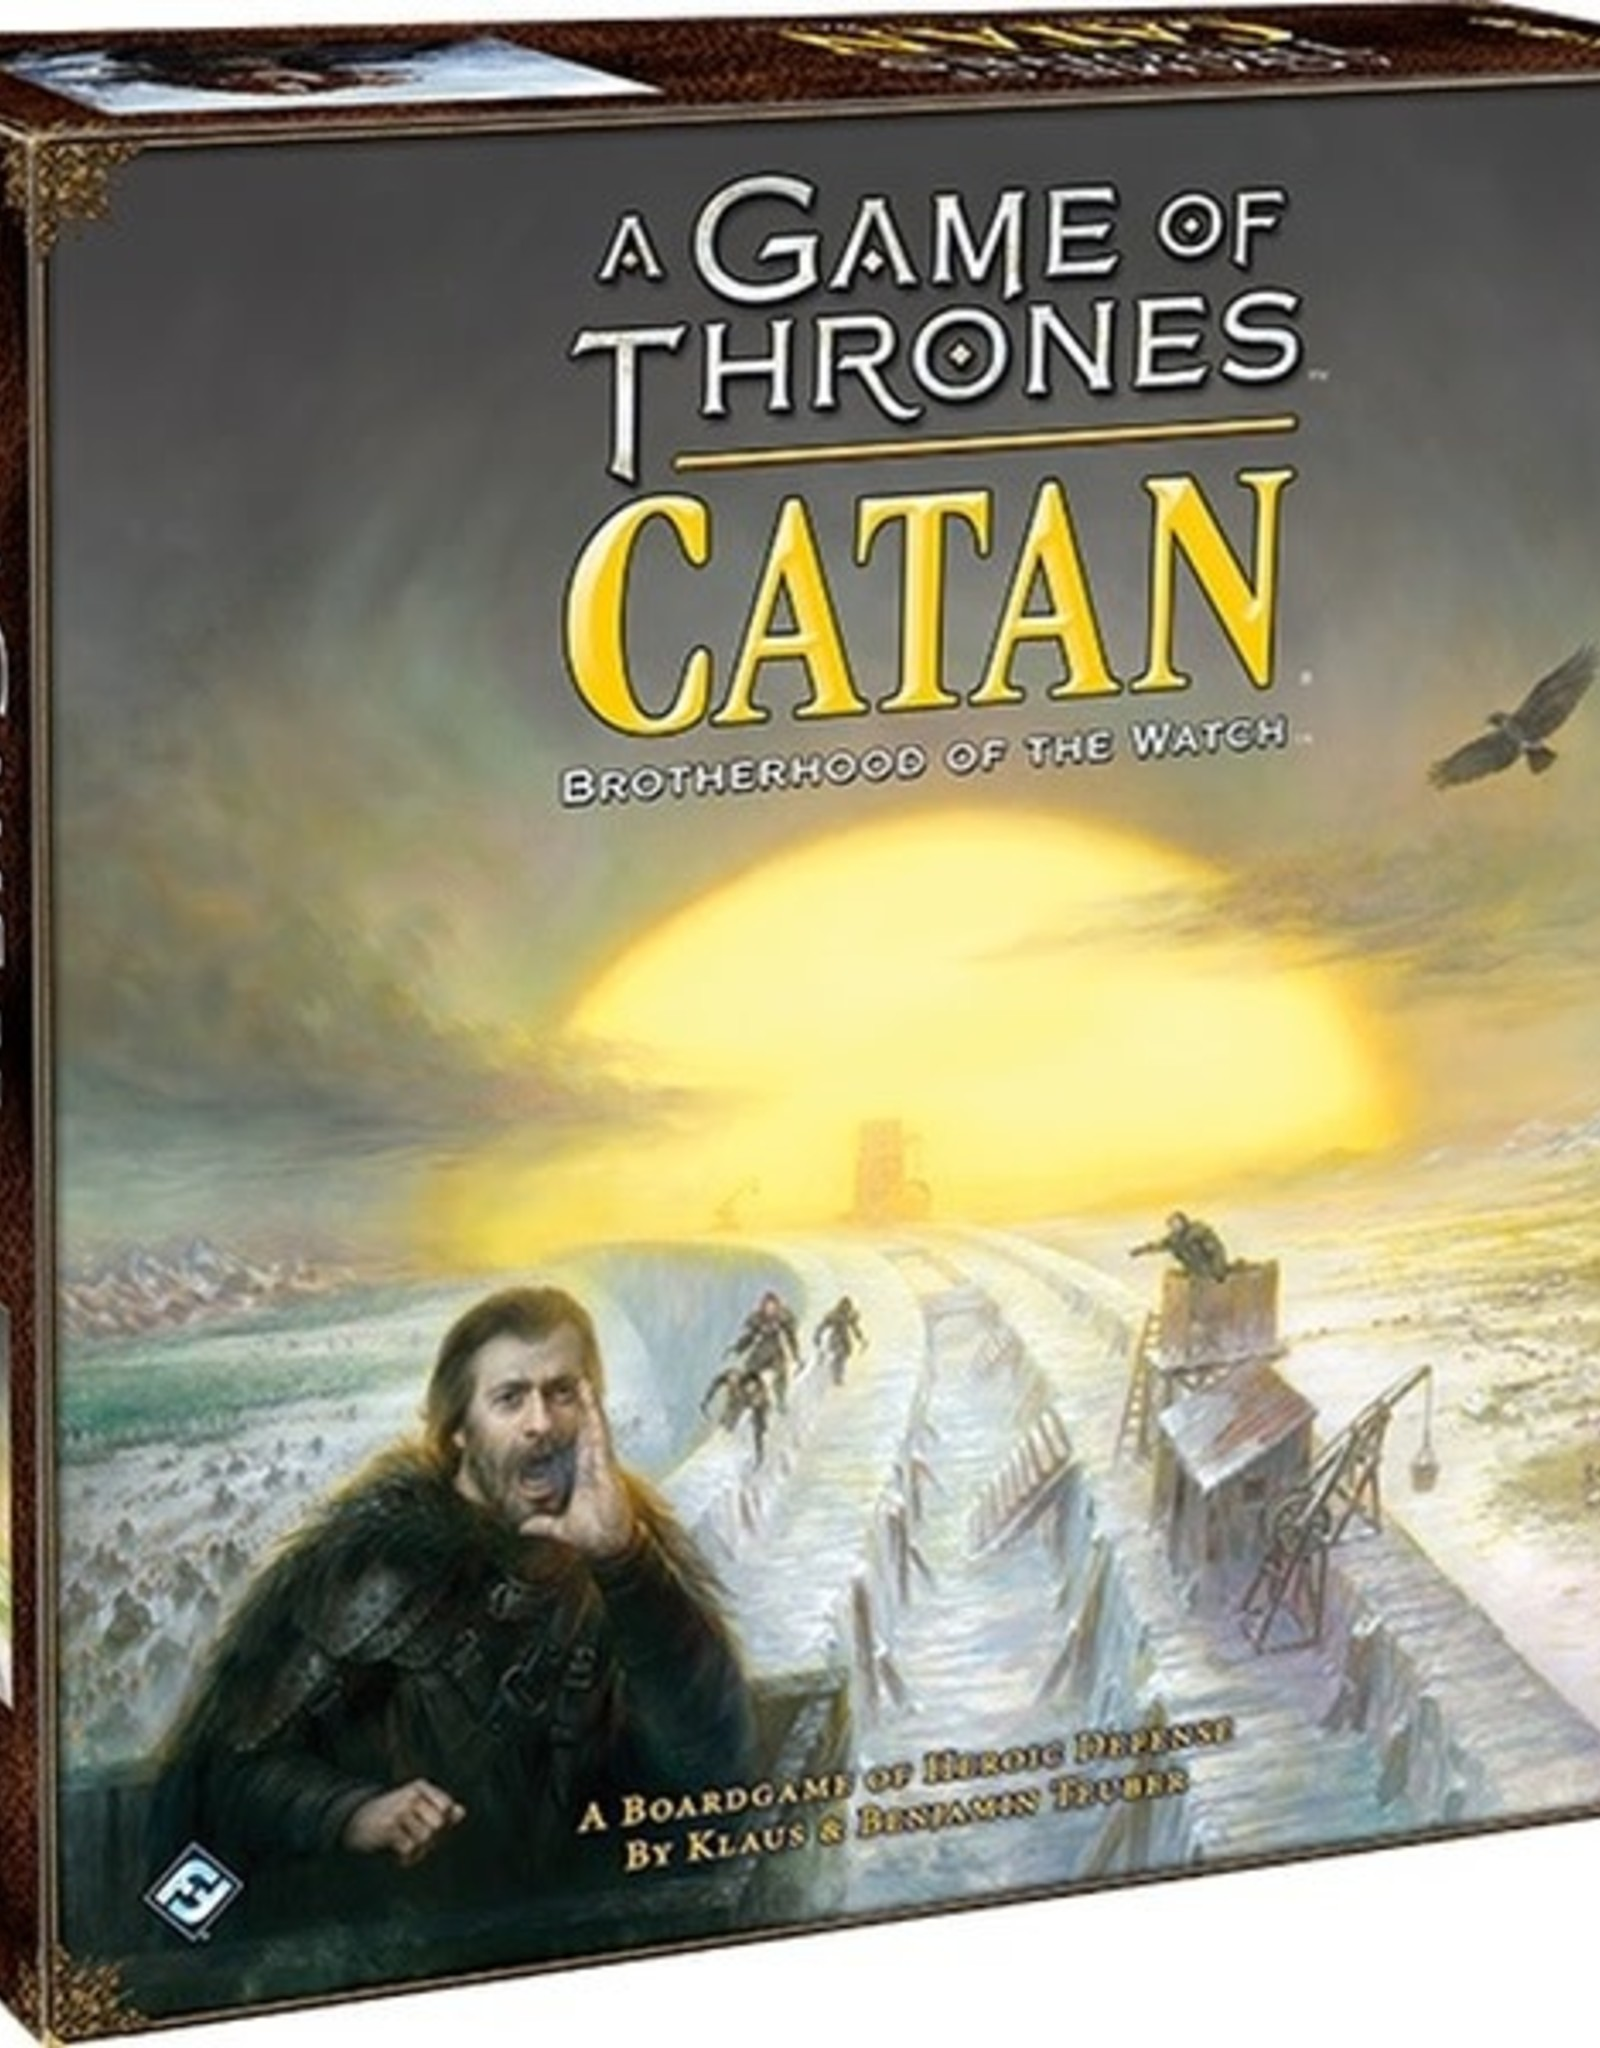 Catan Studio Catan Game of Thrones: Brotherhood of the Watch